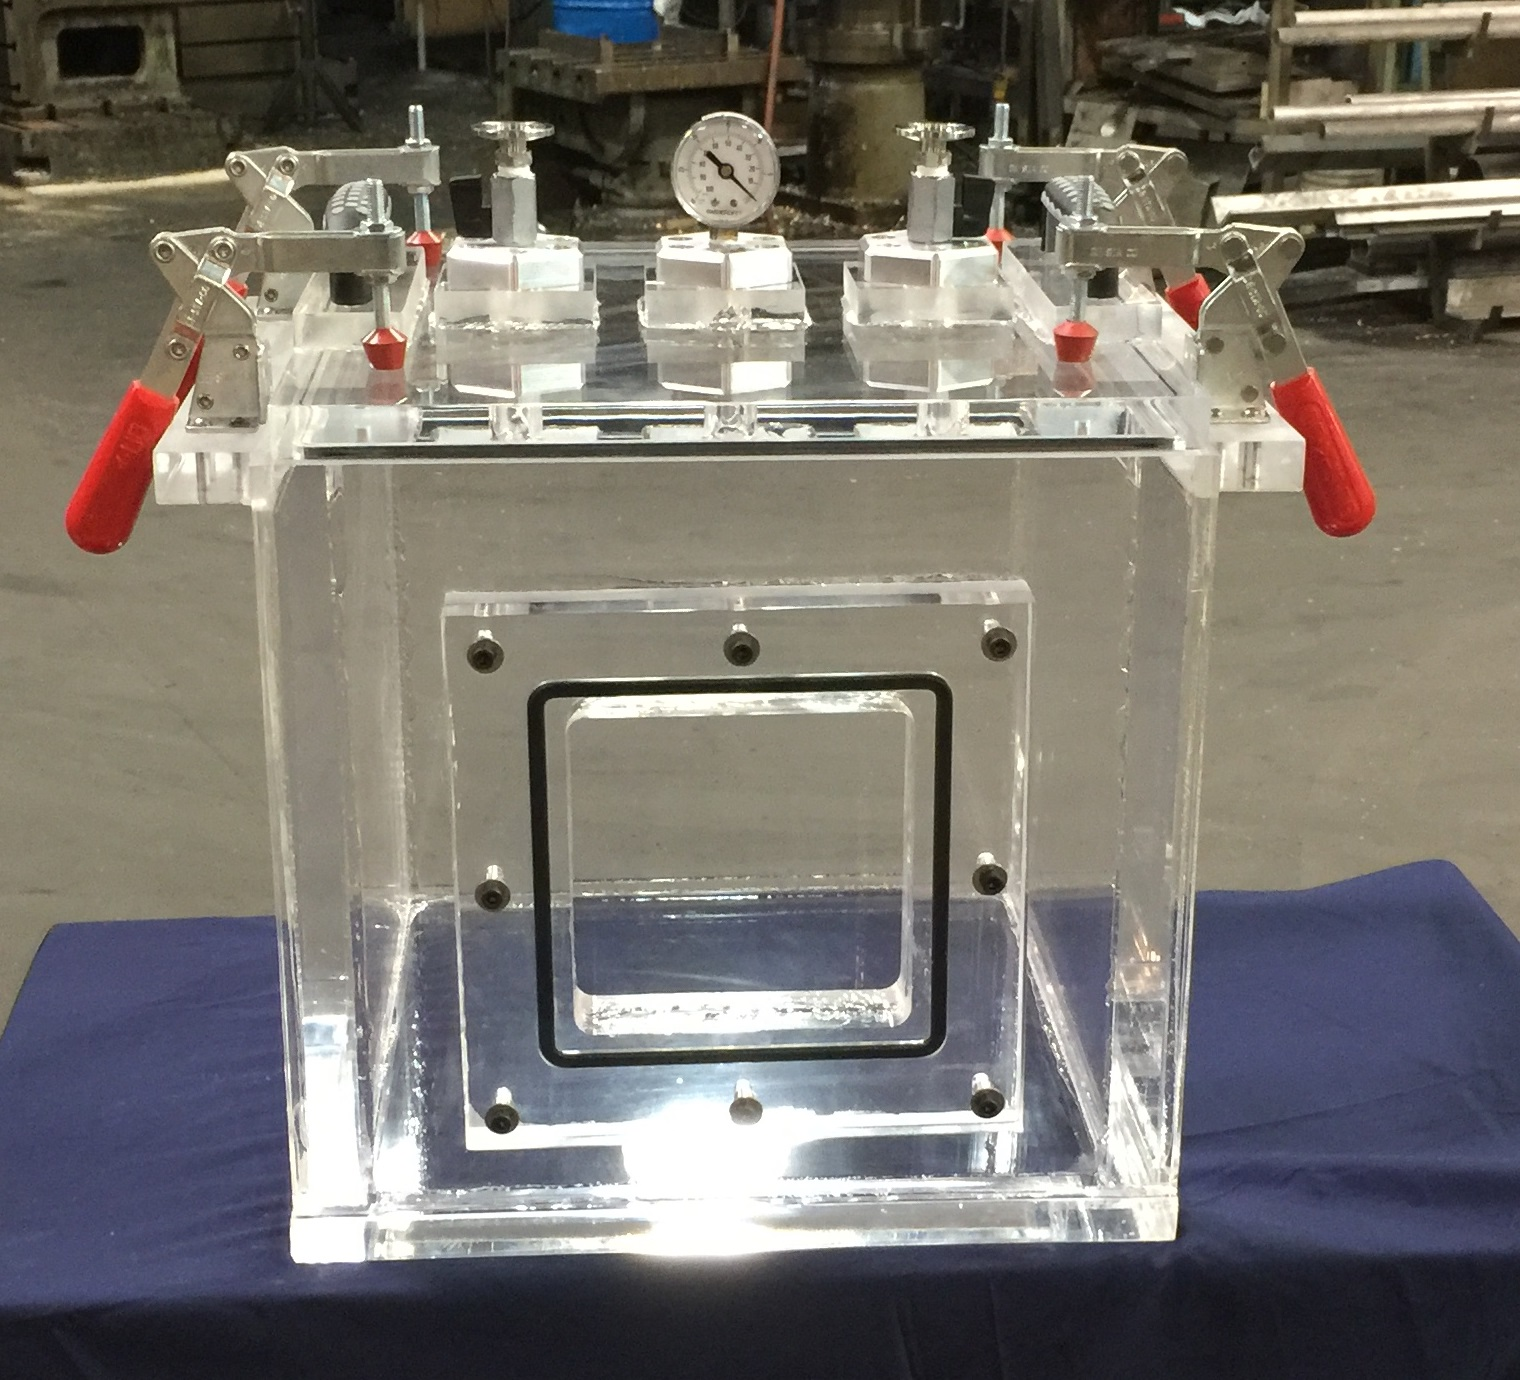 modified 14 inch cube vacuum chamber for degassing